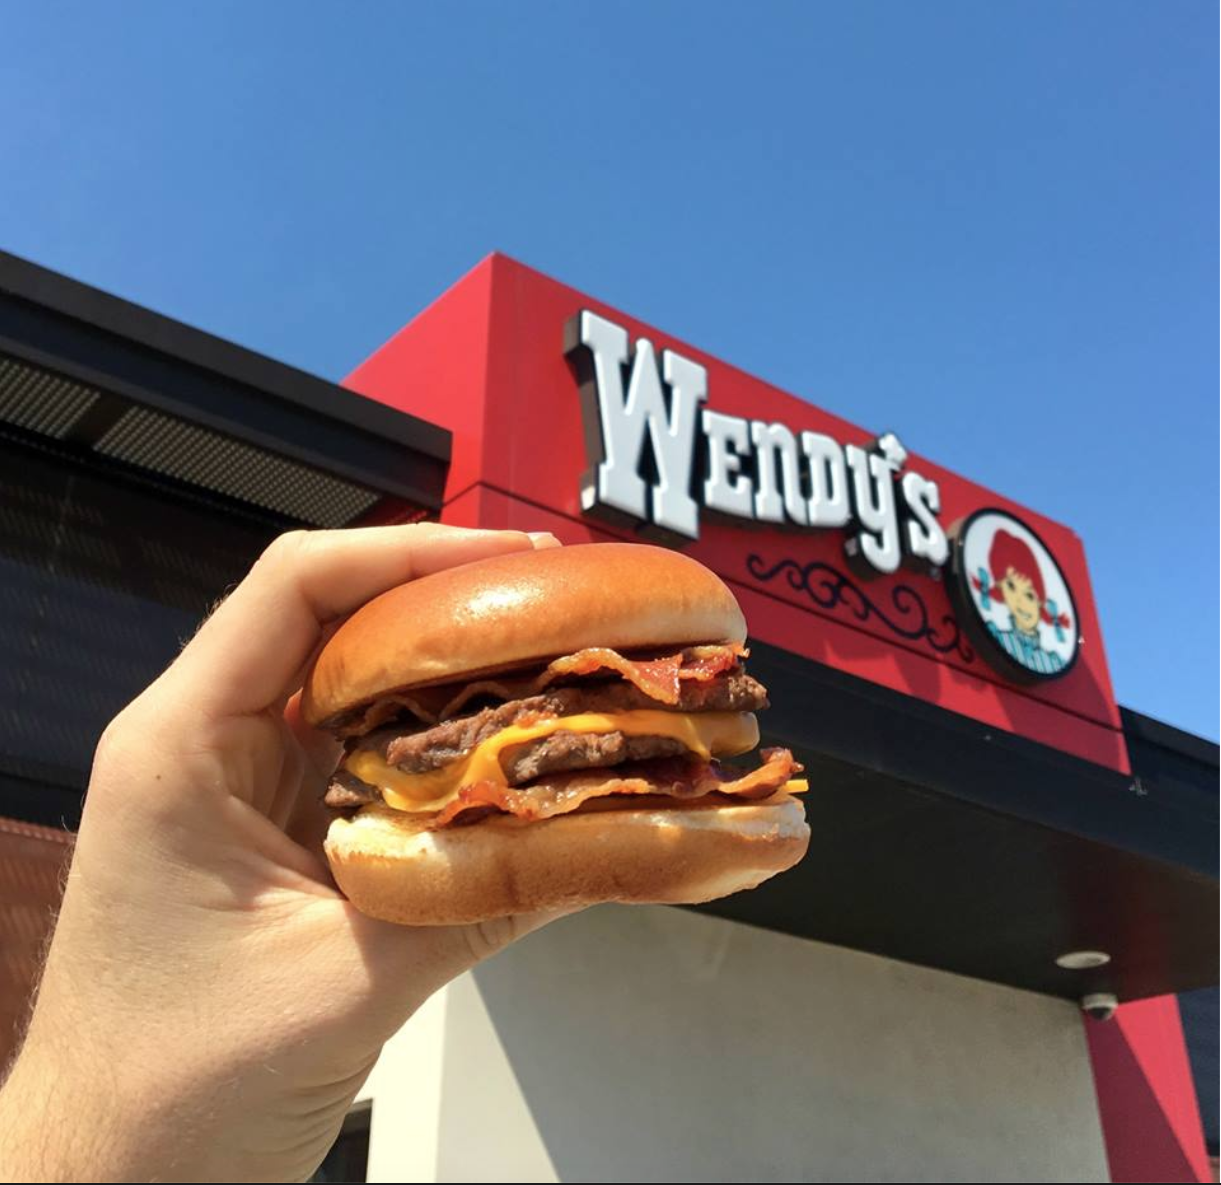 Here's How You Can Get A Baconator For Only $1 From Wendy's